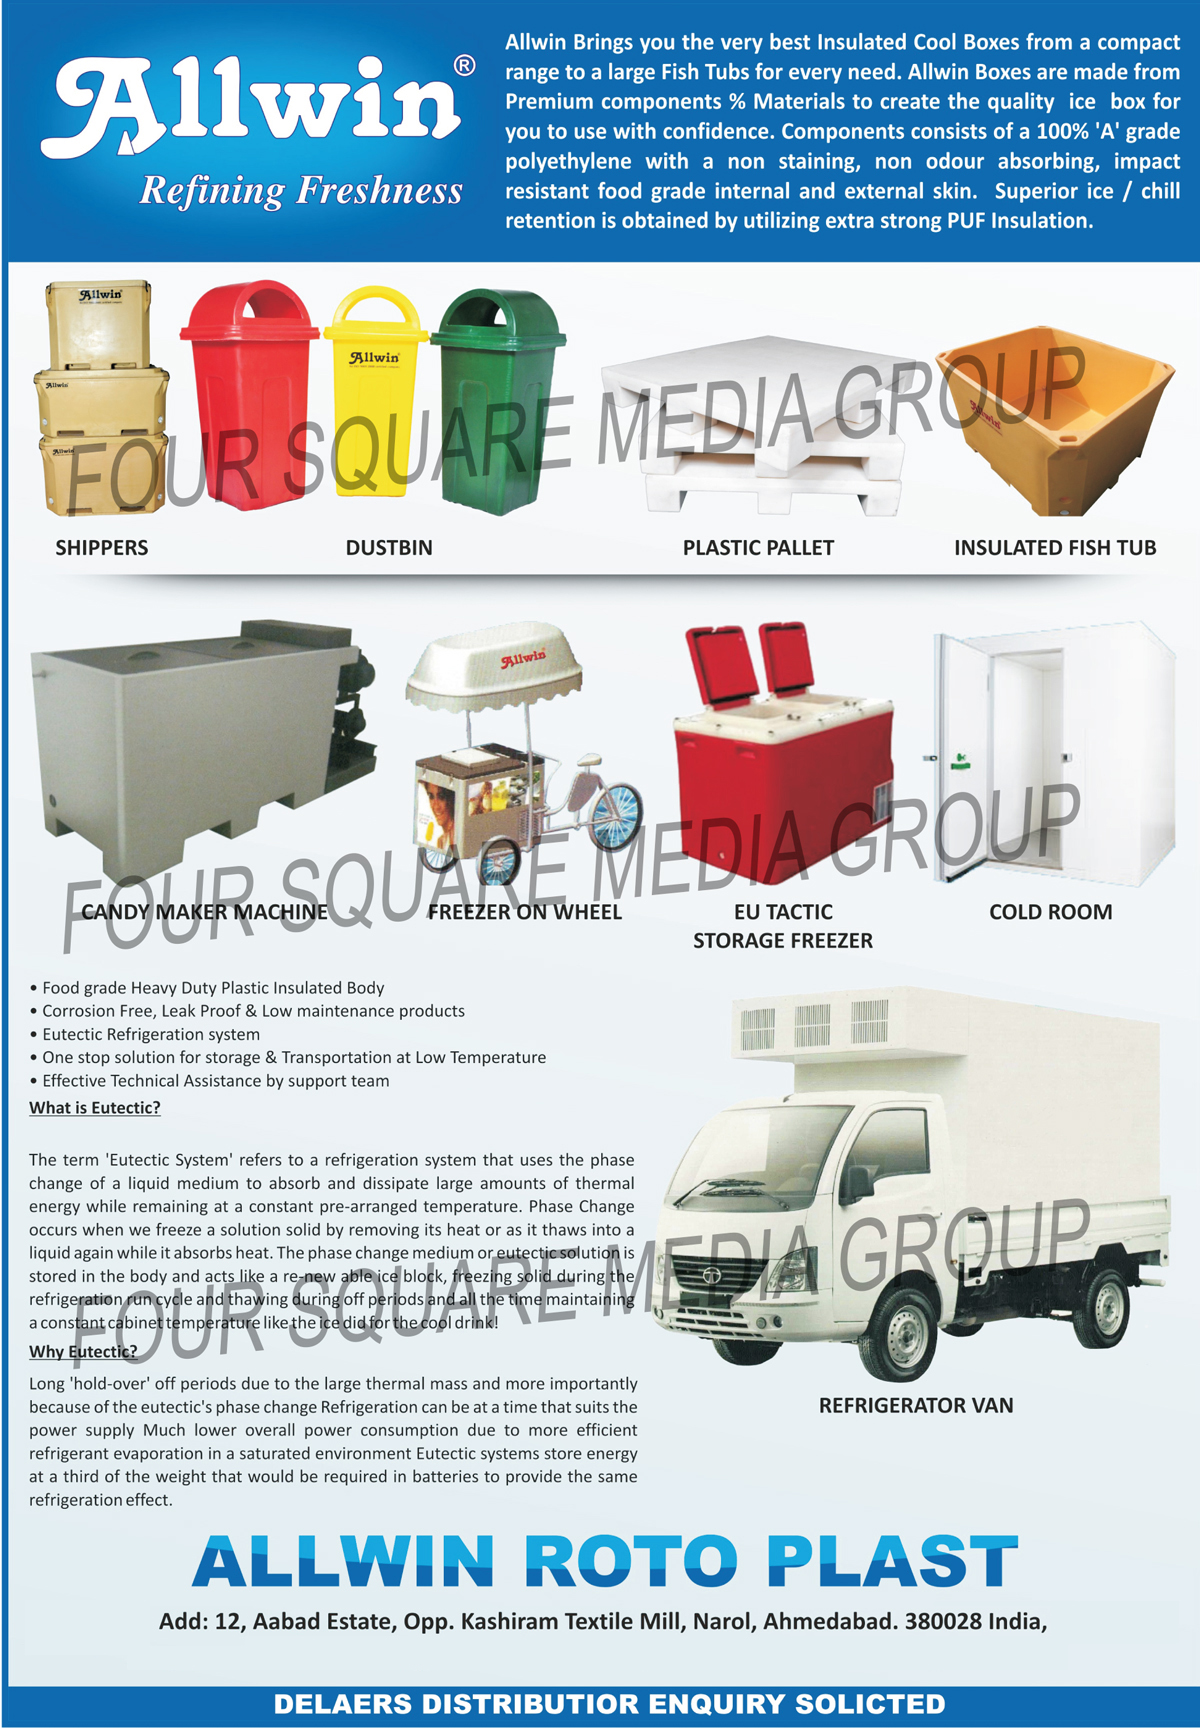 Insulated Ice Box, Insulated Shipper Box, Plastic Pallet, Plastic Dustbin, Insulated Shipper, Milk Can, Insulated Fish Tubs, Candy Maker Machines, Freezer On Wheels, EU Tactic Storage Freezers, Cold Rooms, Refrigeration Vans